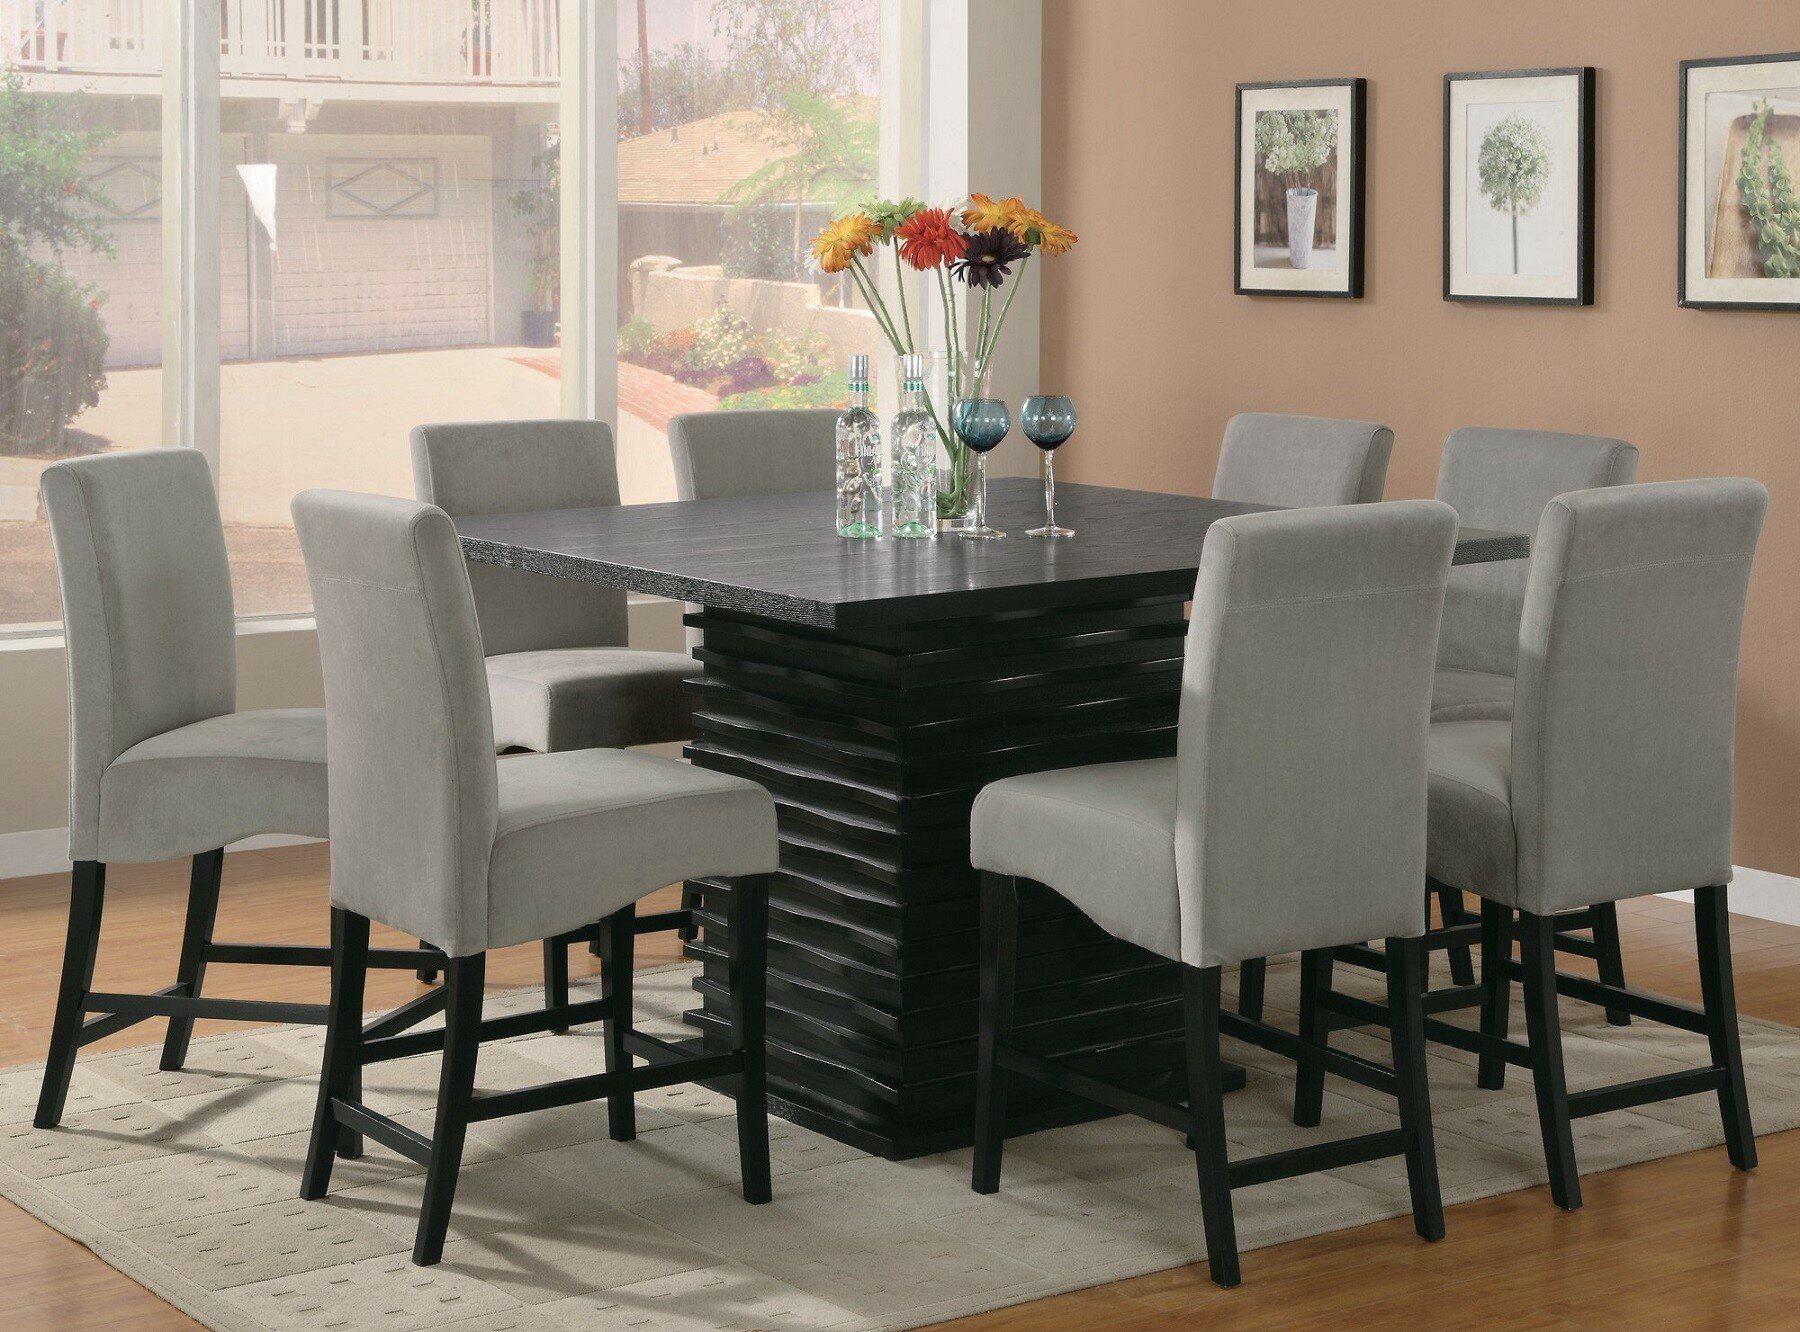 Exceptionnel Infini Furnishings Jordan 9 Piece Counter Height Dining Set U0026 Reviews |  Wayfair